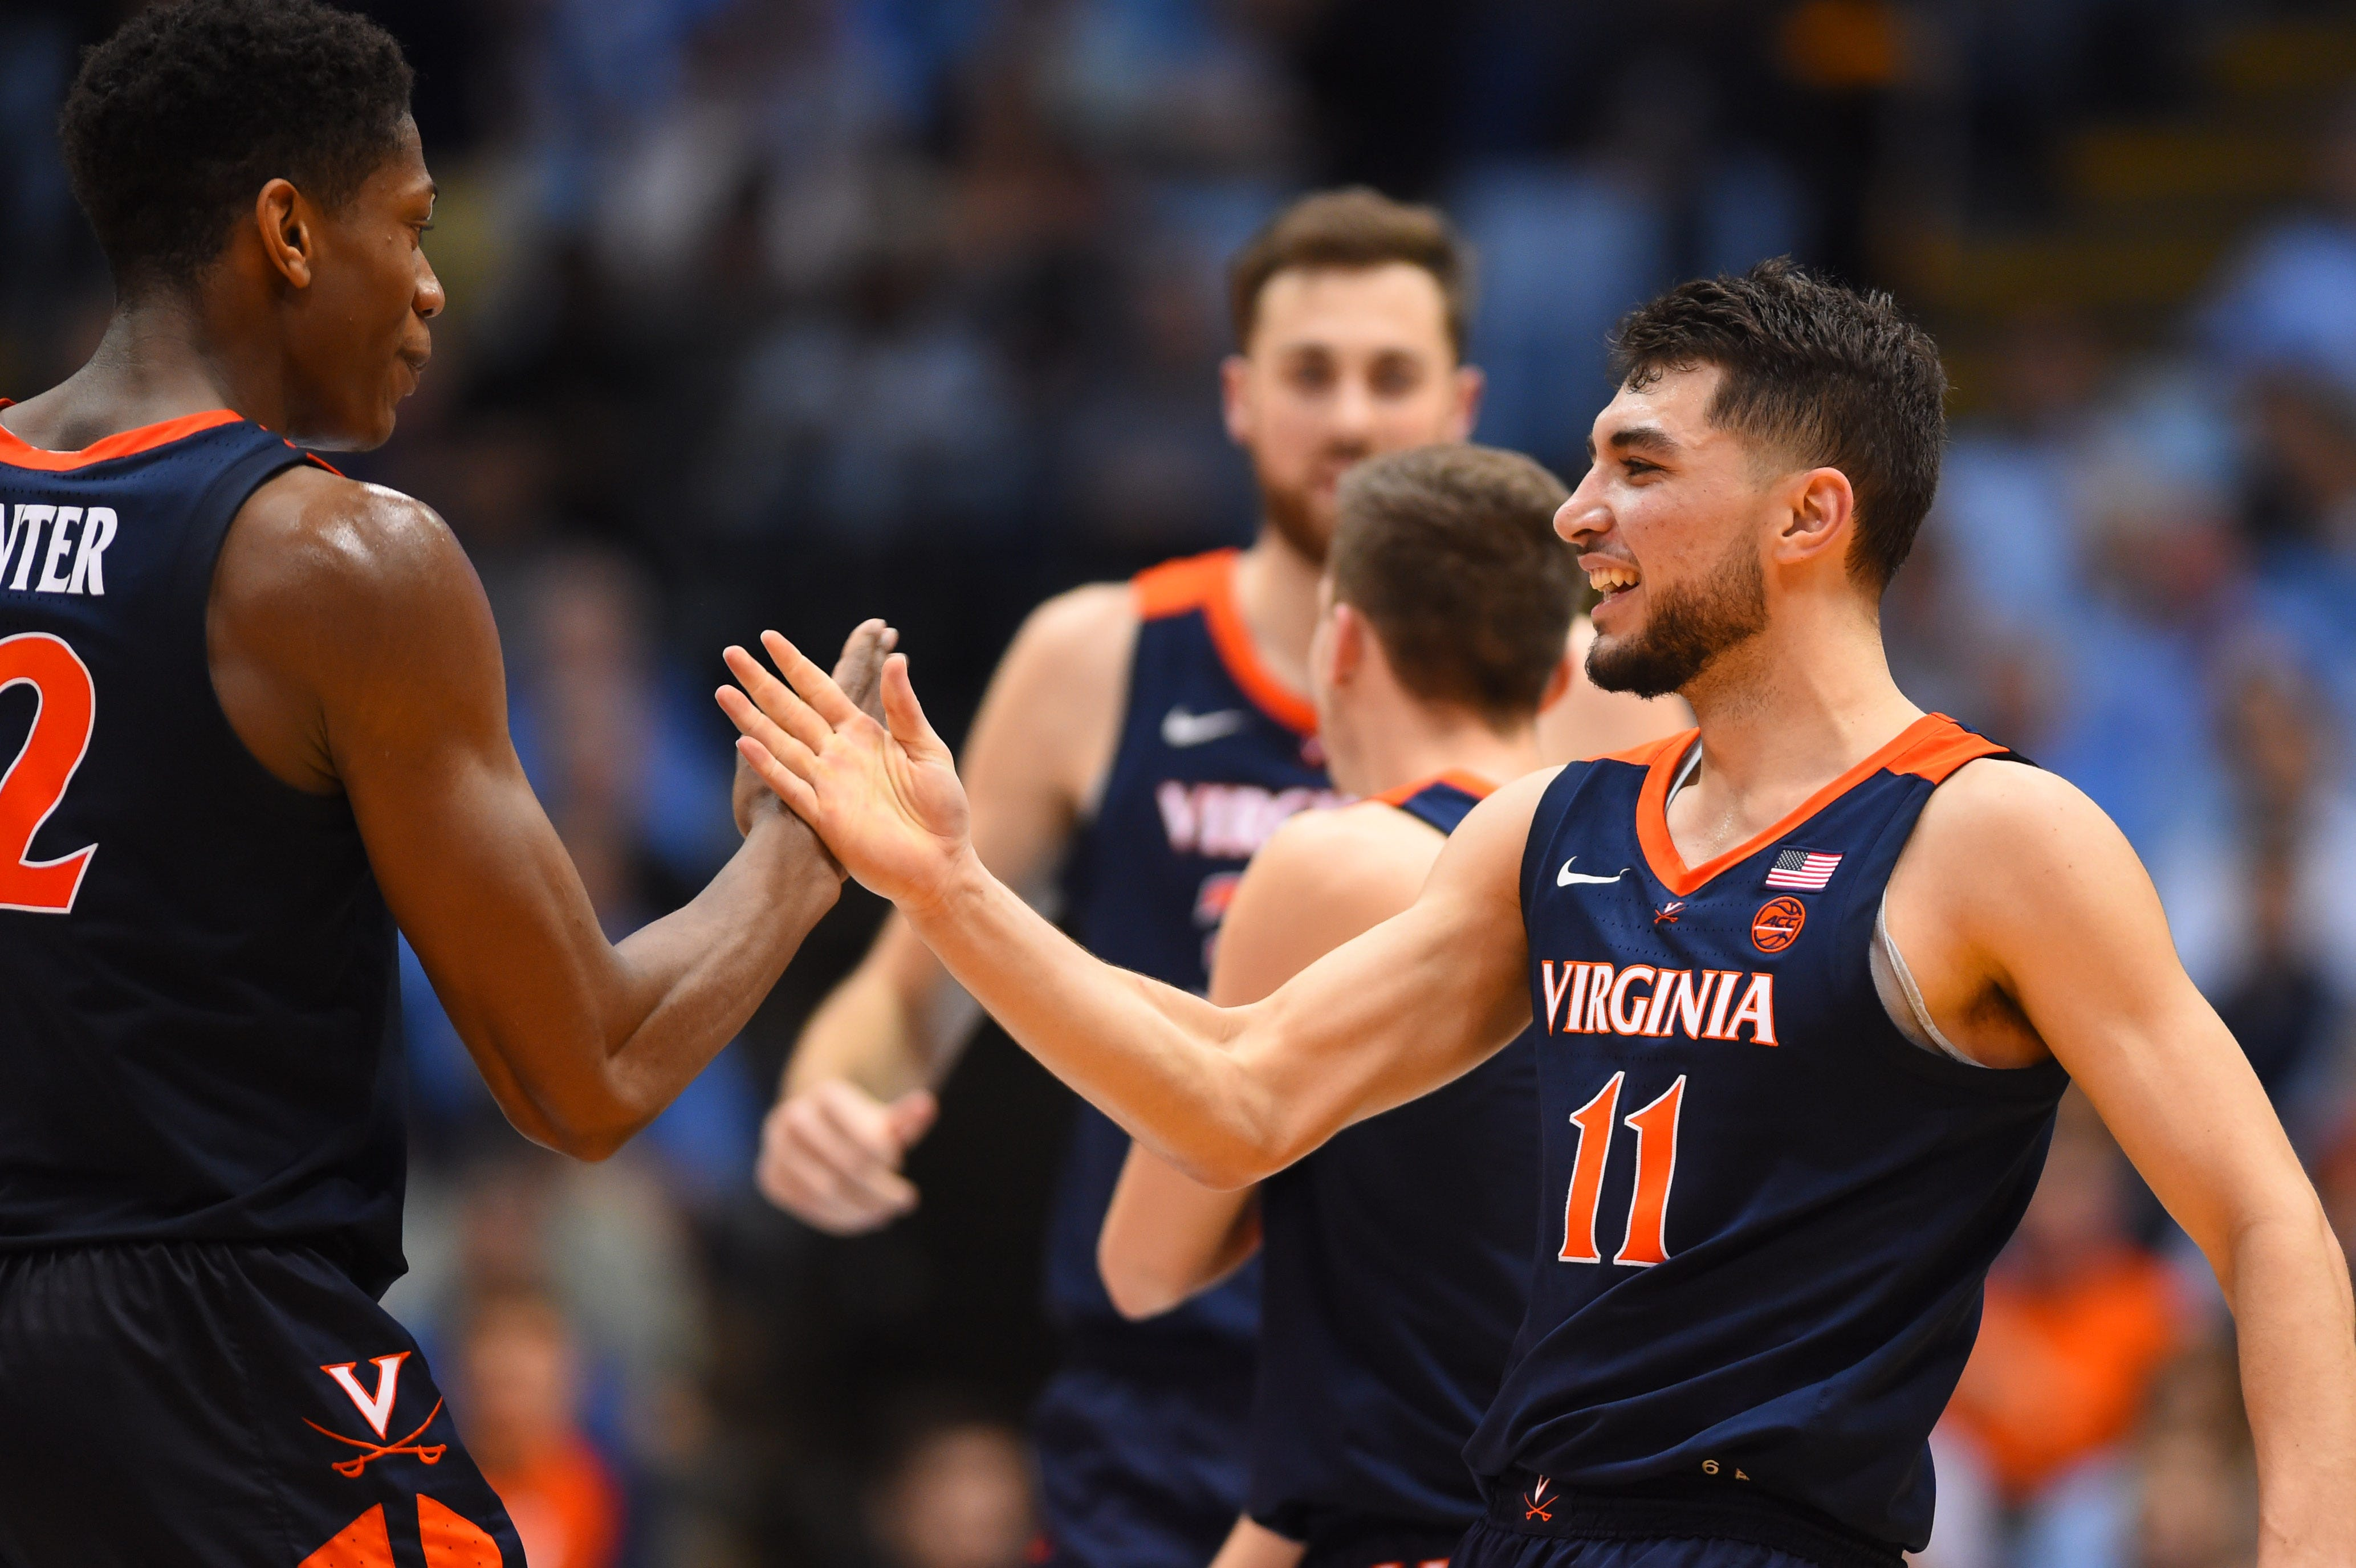 Virginia guards De'Andre Hunter (left) and Ty Jerome (11) react in the second half at Dean E. Smith Center.